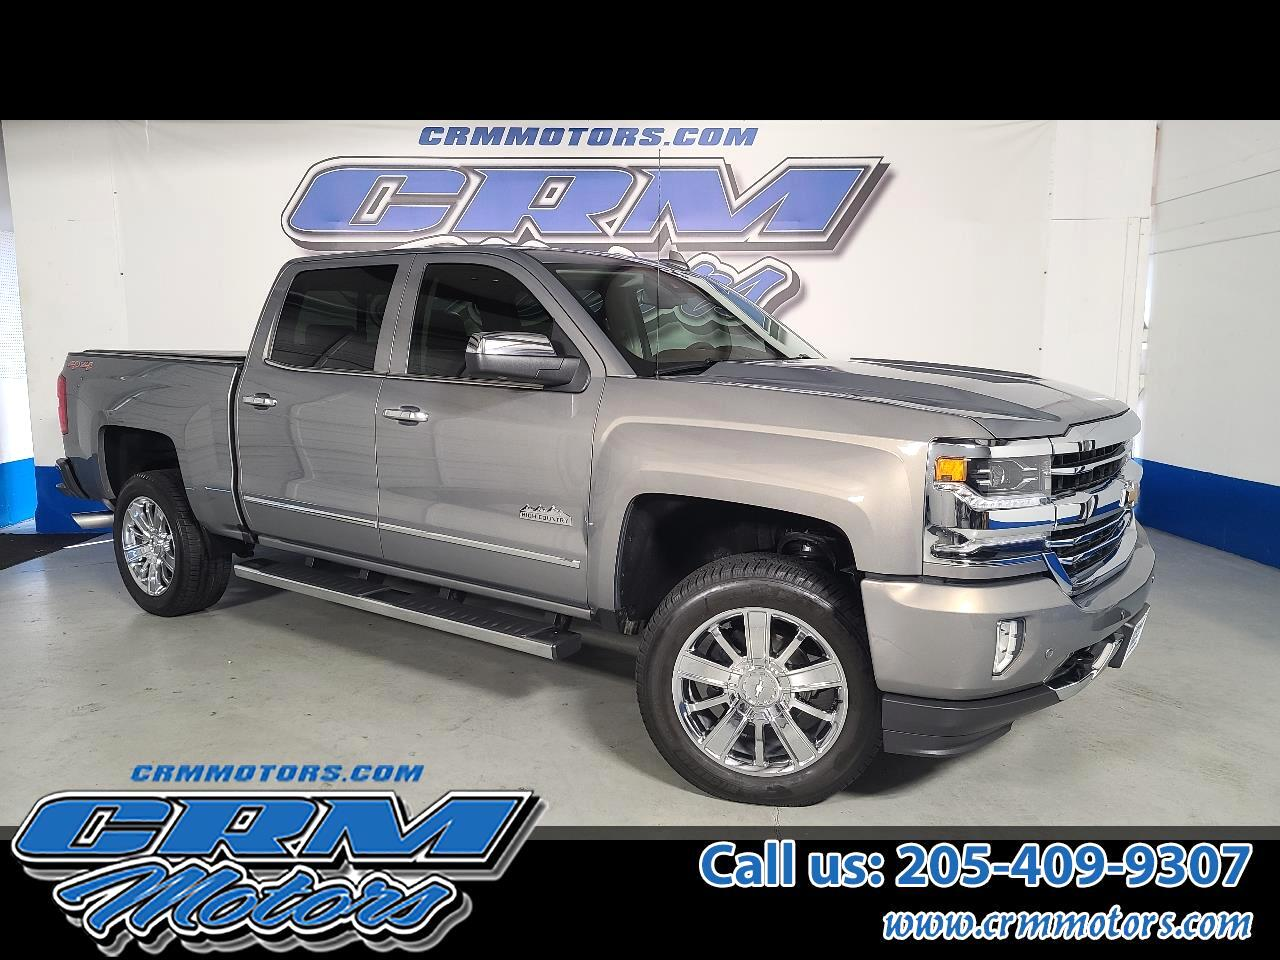 "Chevrolet Silverado 1500 4WD Crew Cab 143.5"" High Country 2017"